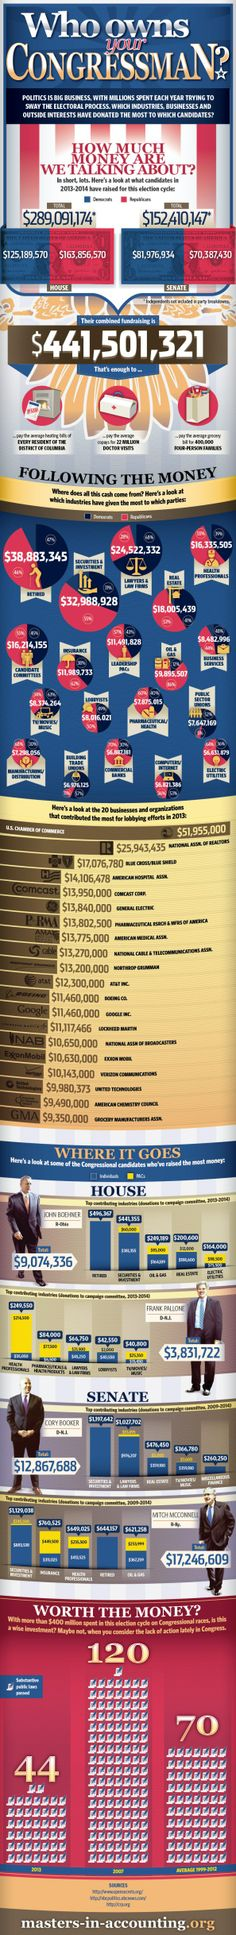 The Big Money Trail. Who Owns Your Congressman? Infographic | AConservativeEdge ~ Government of the people, by the people and for the people has been a lost concept many years ago.  It's all about members of congress voting for who financially owes them. ~ 12/20/13